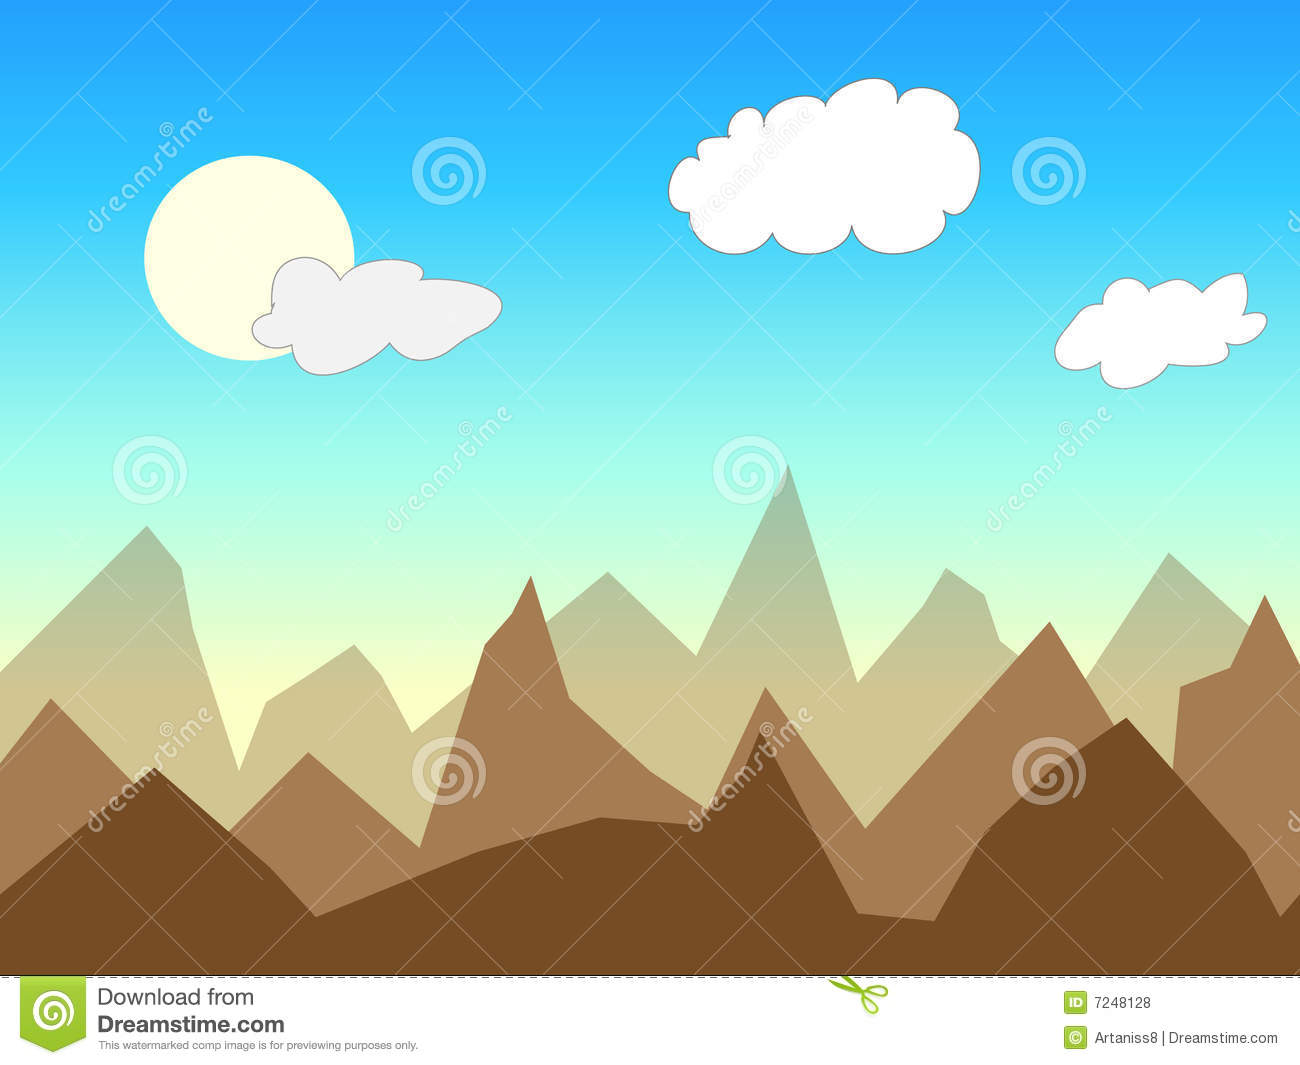 Simple Wallpaper Mountain Cartoon - cartoon-wallpaper-7248128  Best Photo Reference_51210.jpg